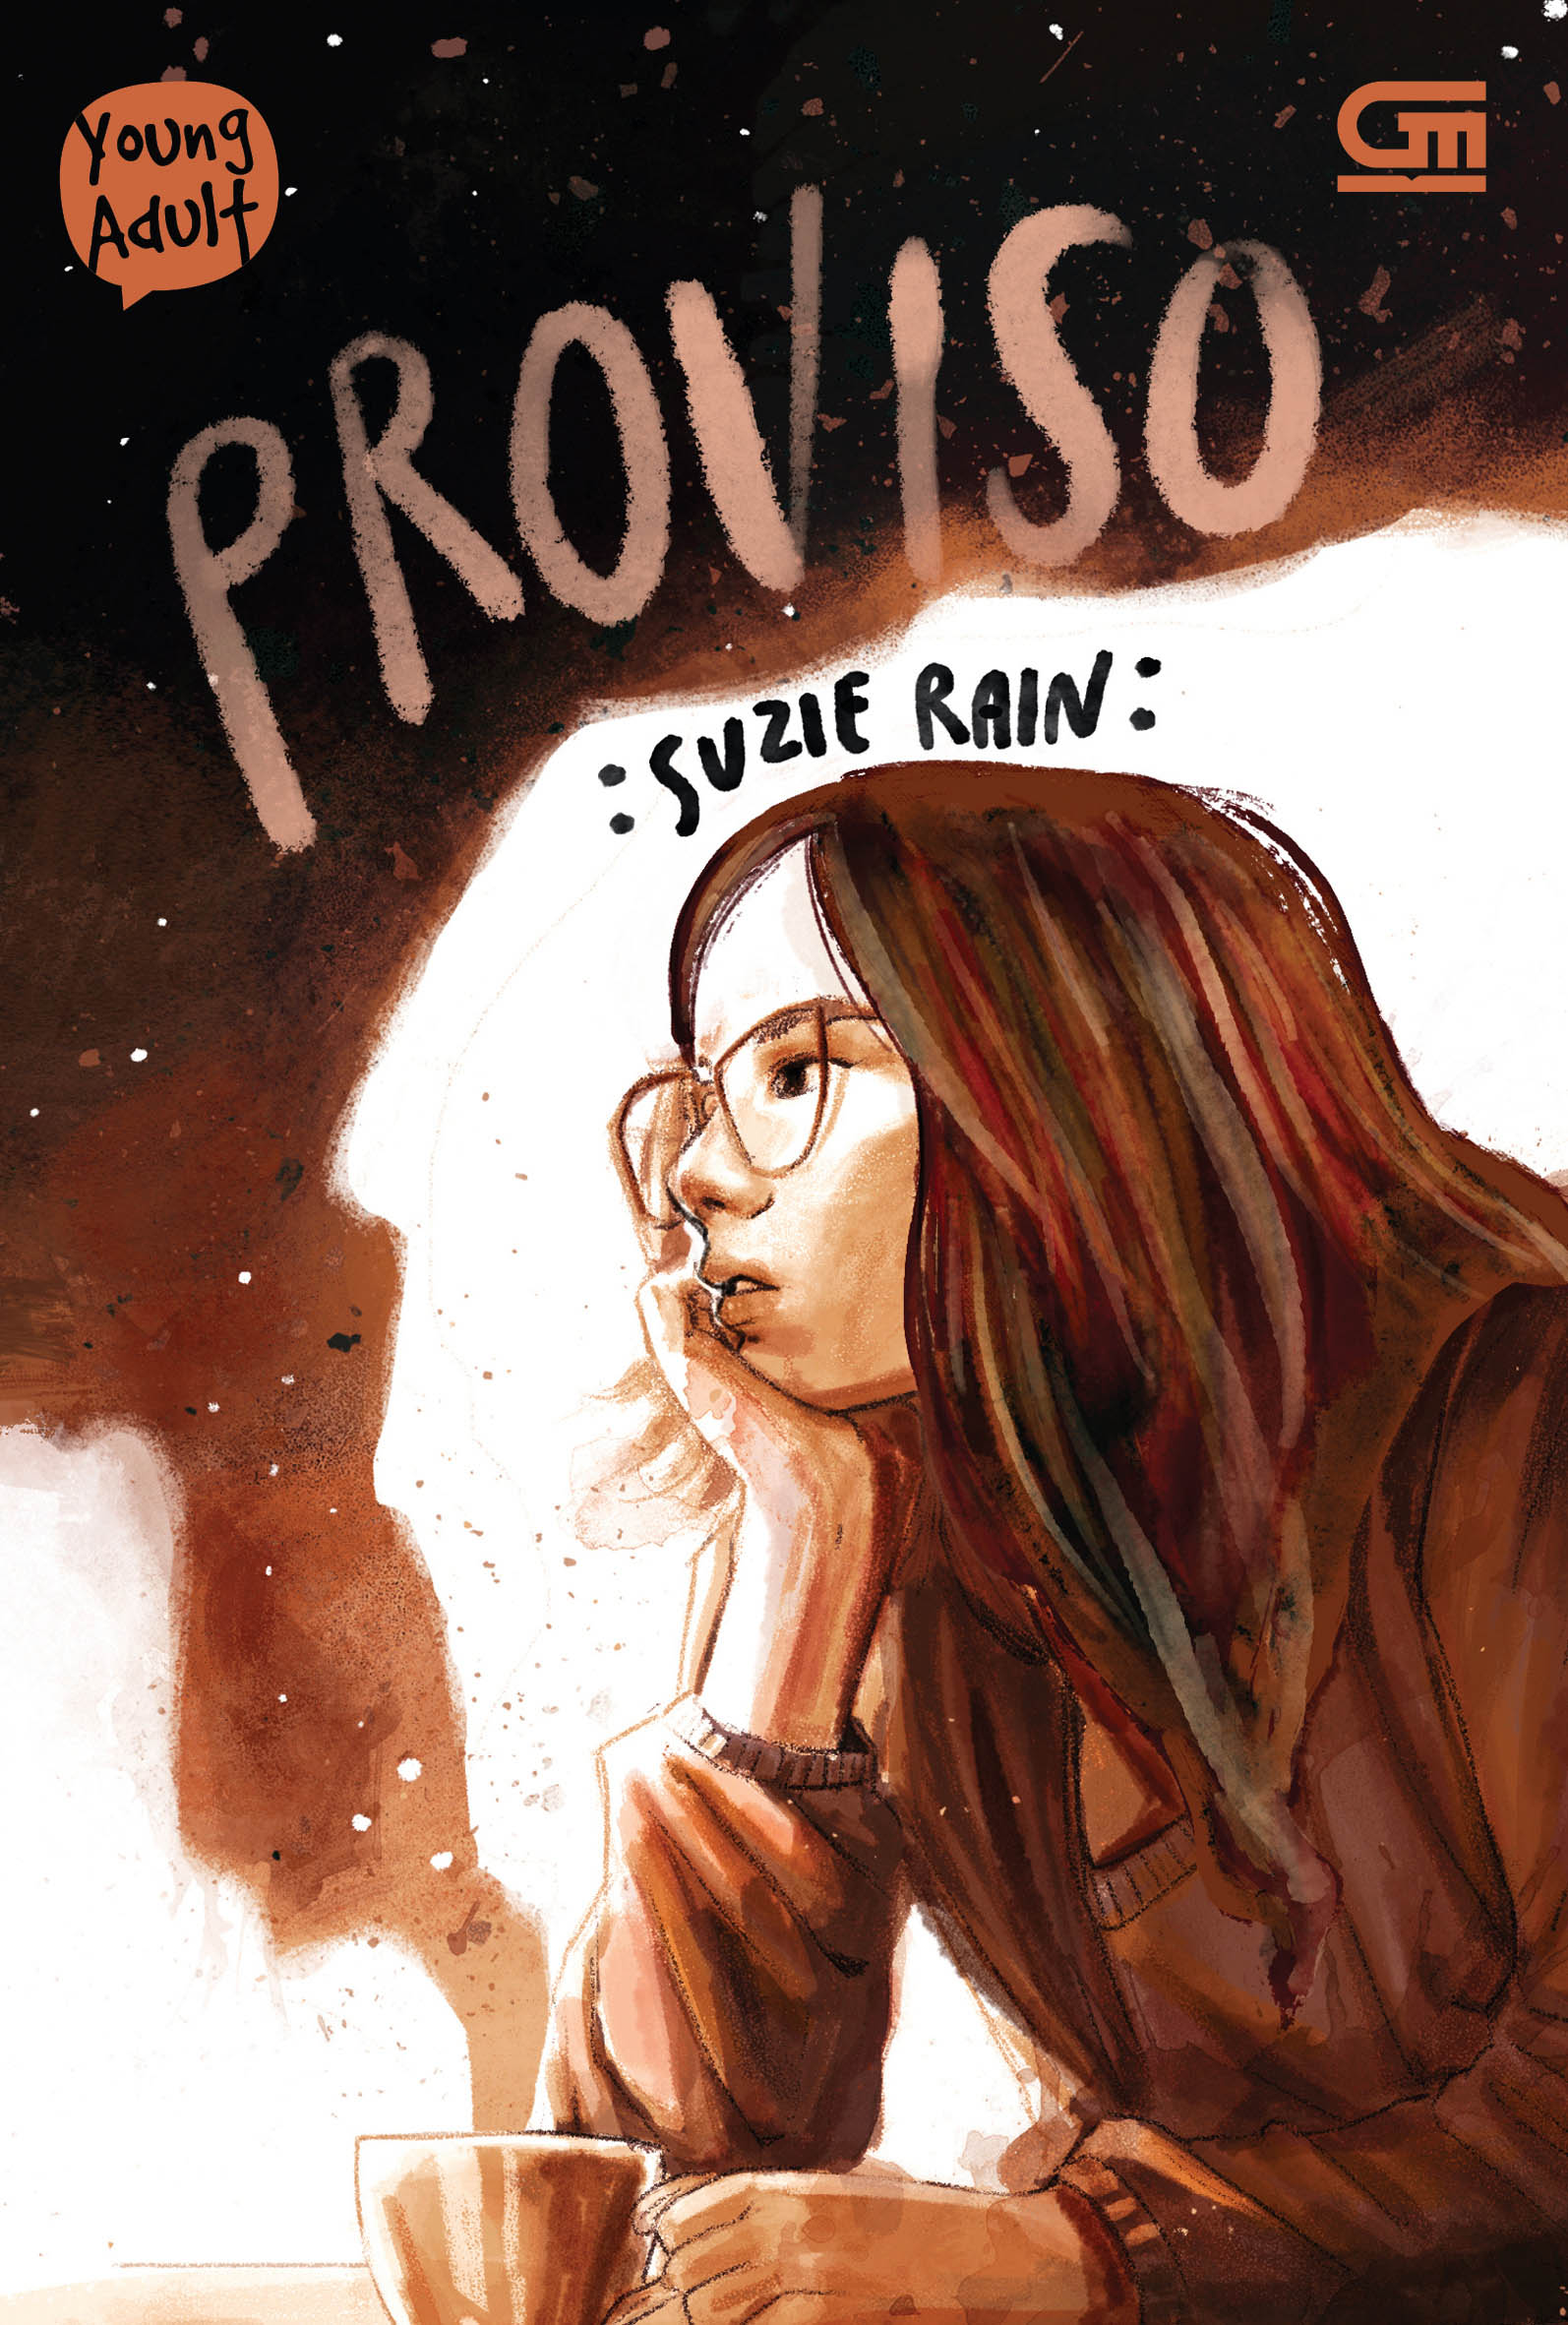 Young Adult: Proviso